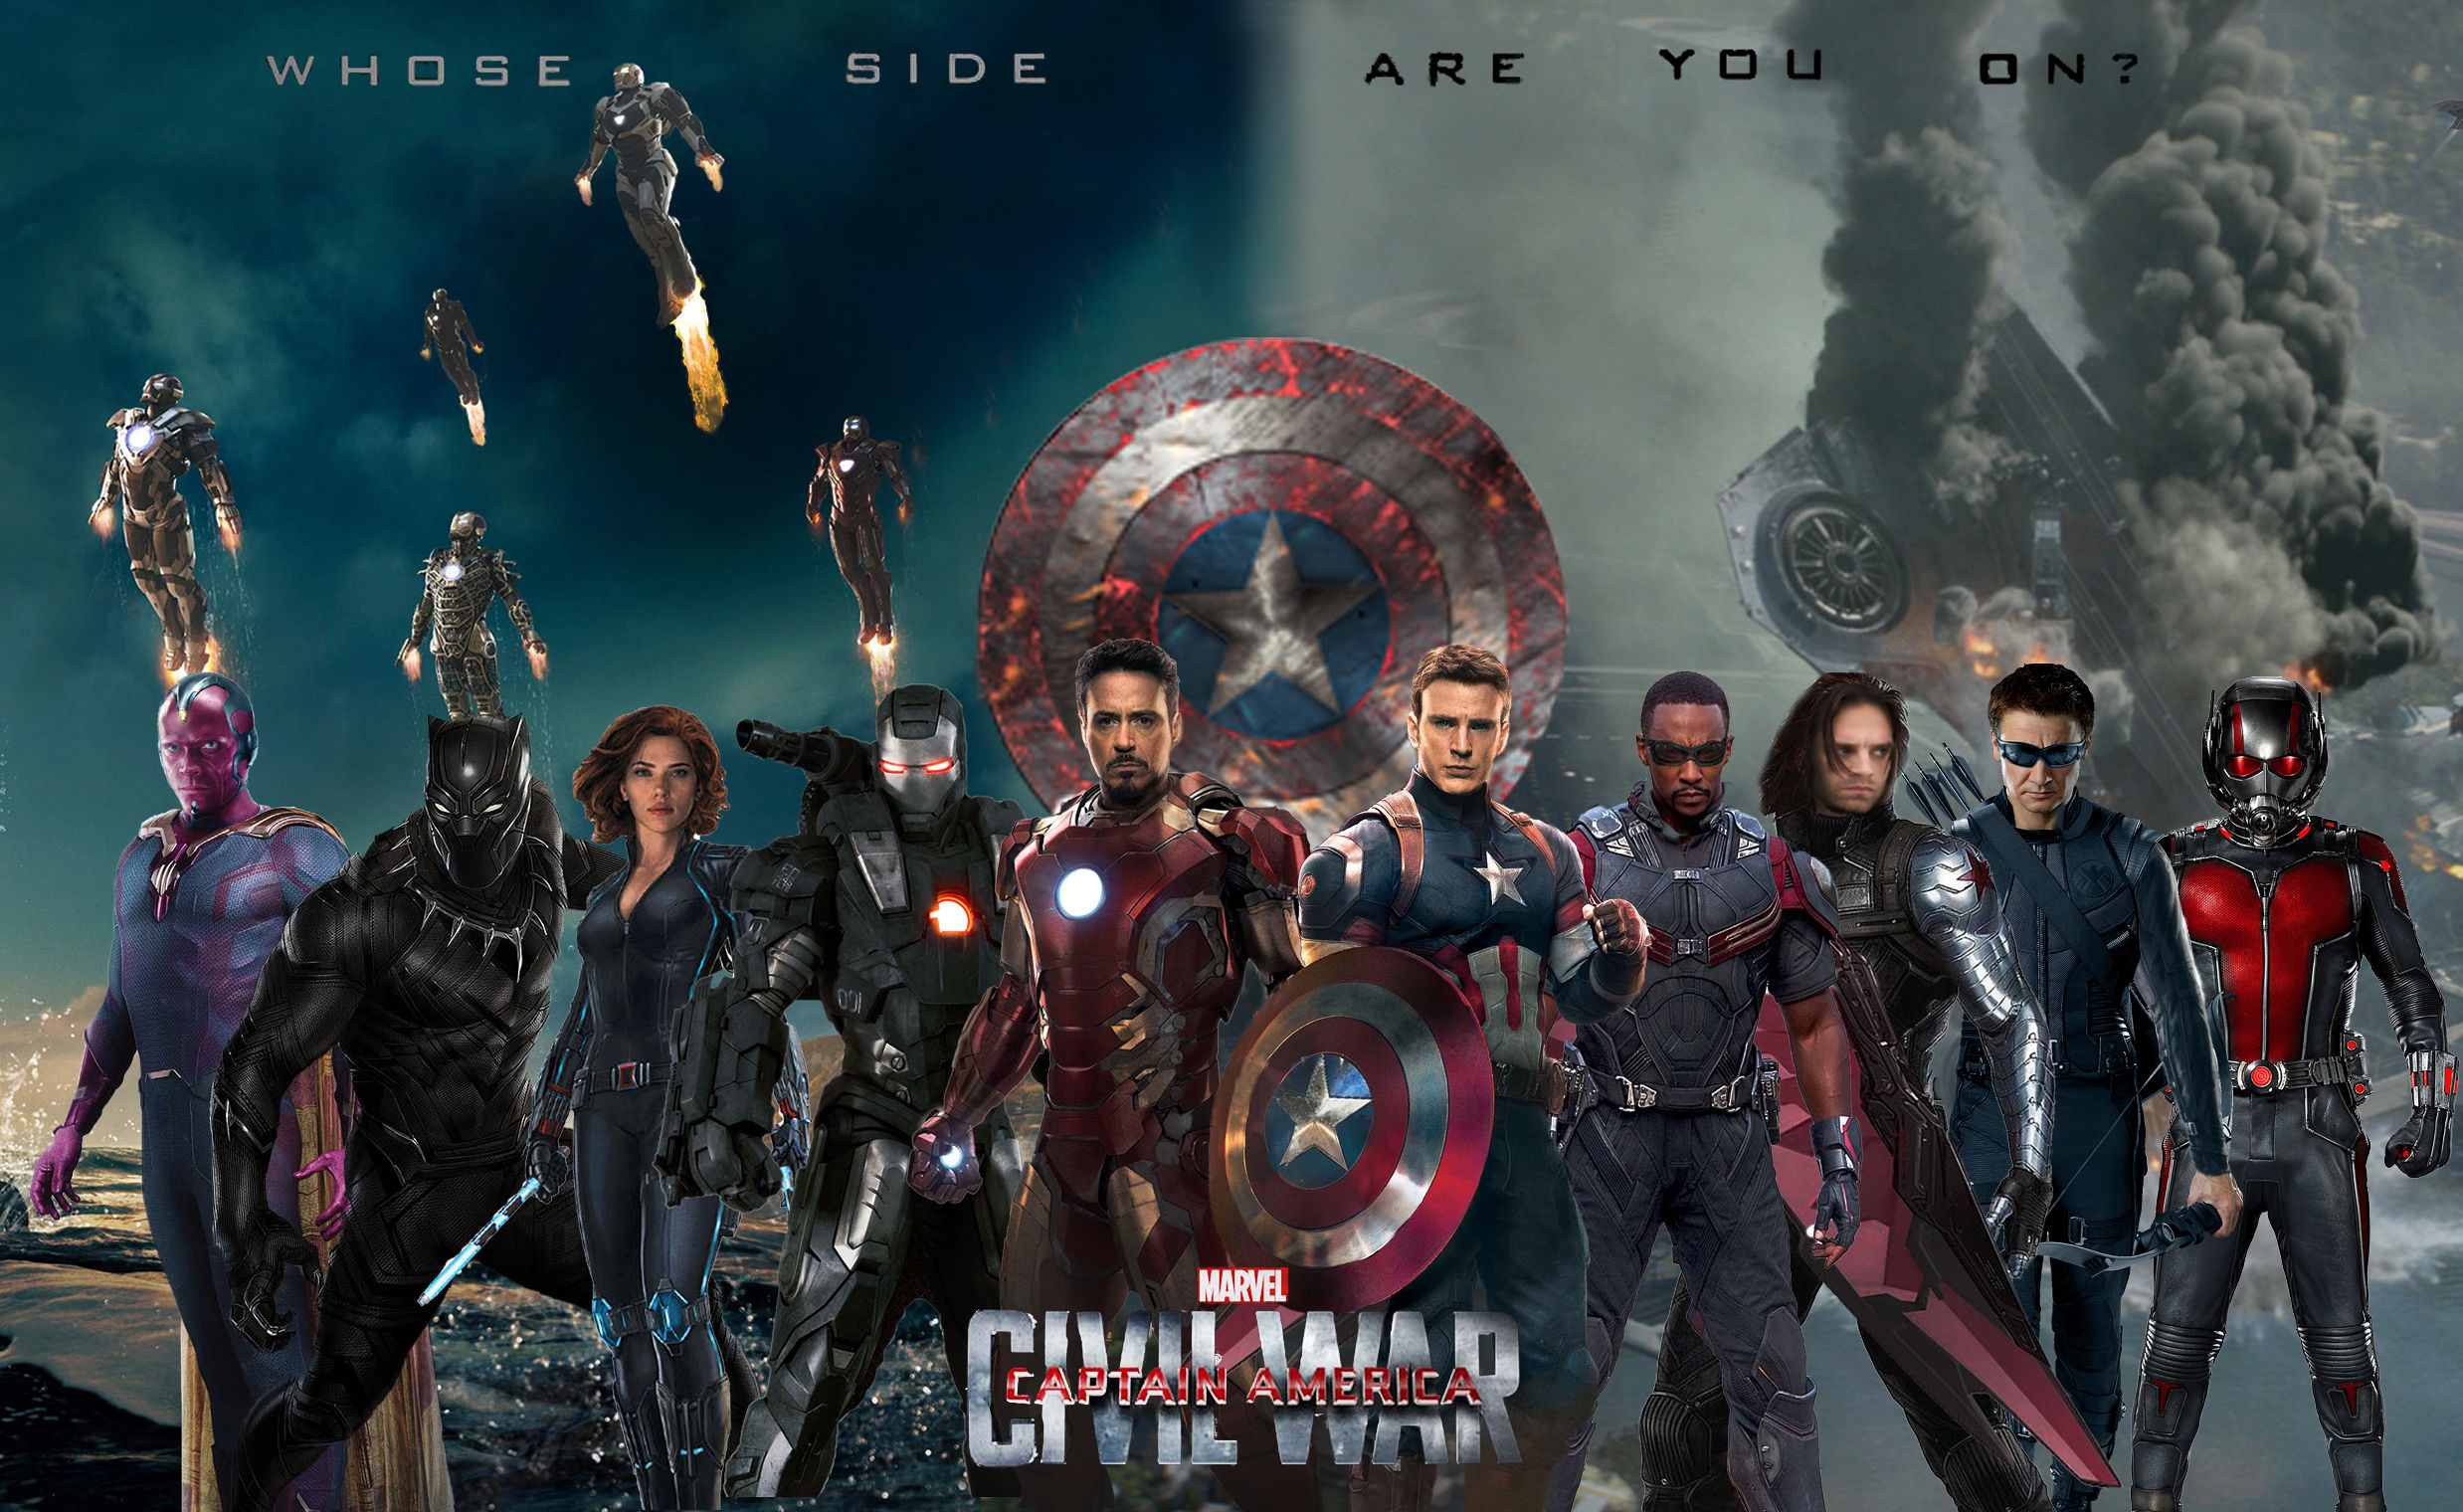 captain-america-civil-war-wallpaper-more-final-piece-for-now-607639-1